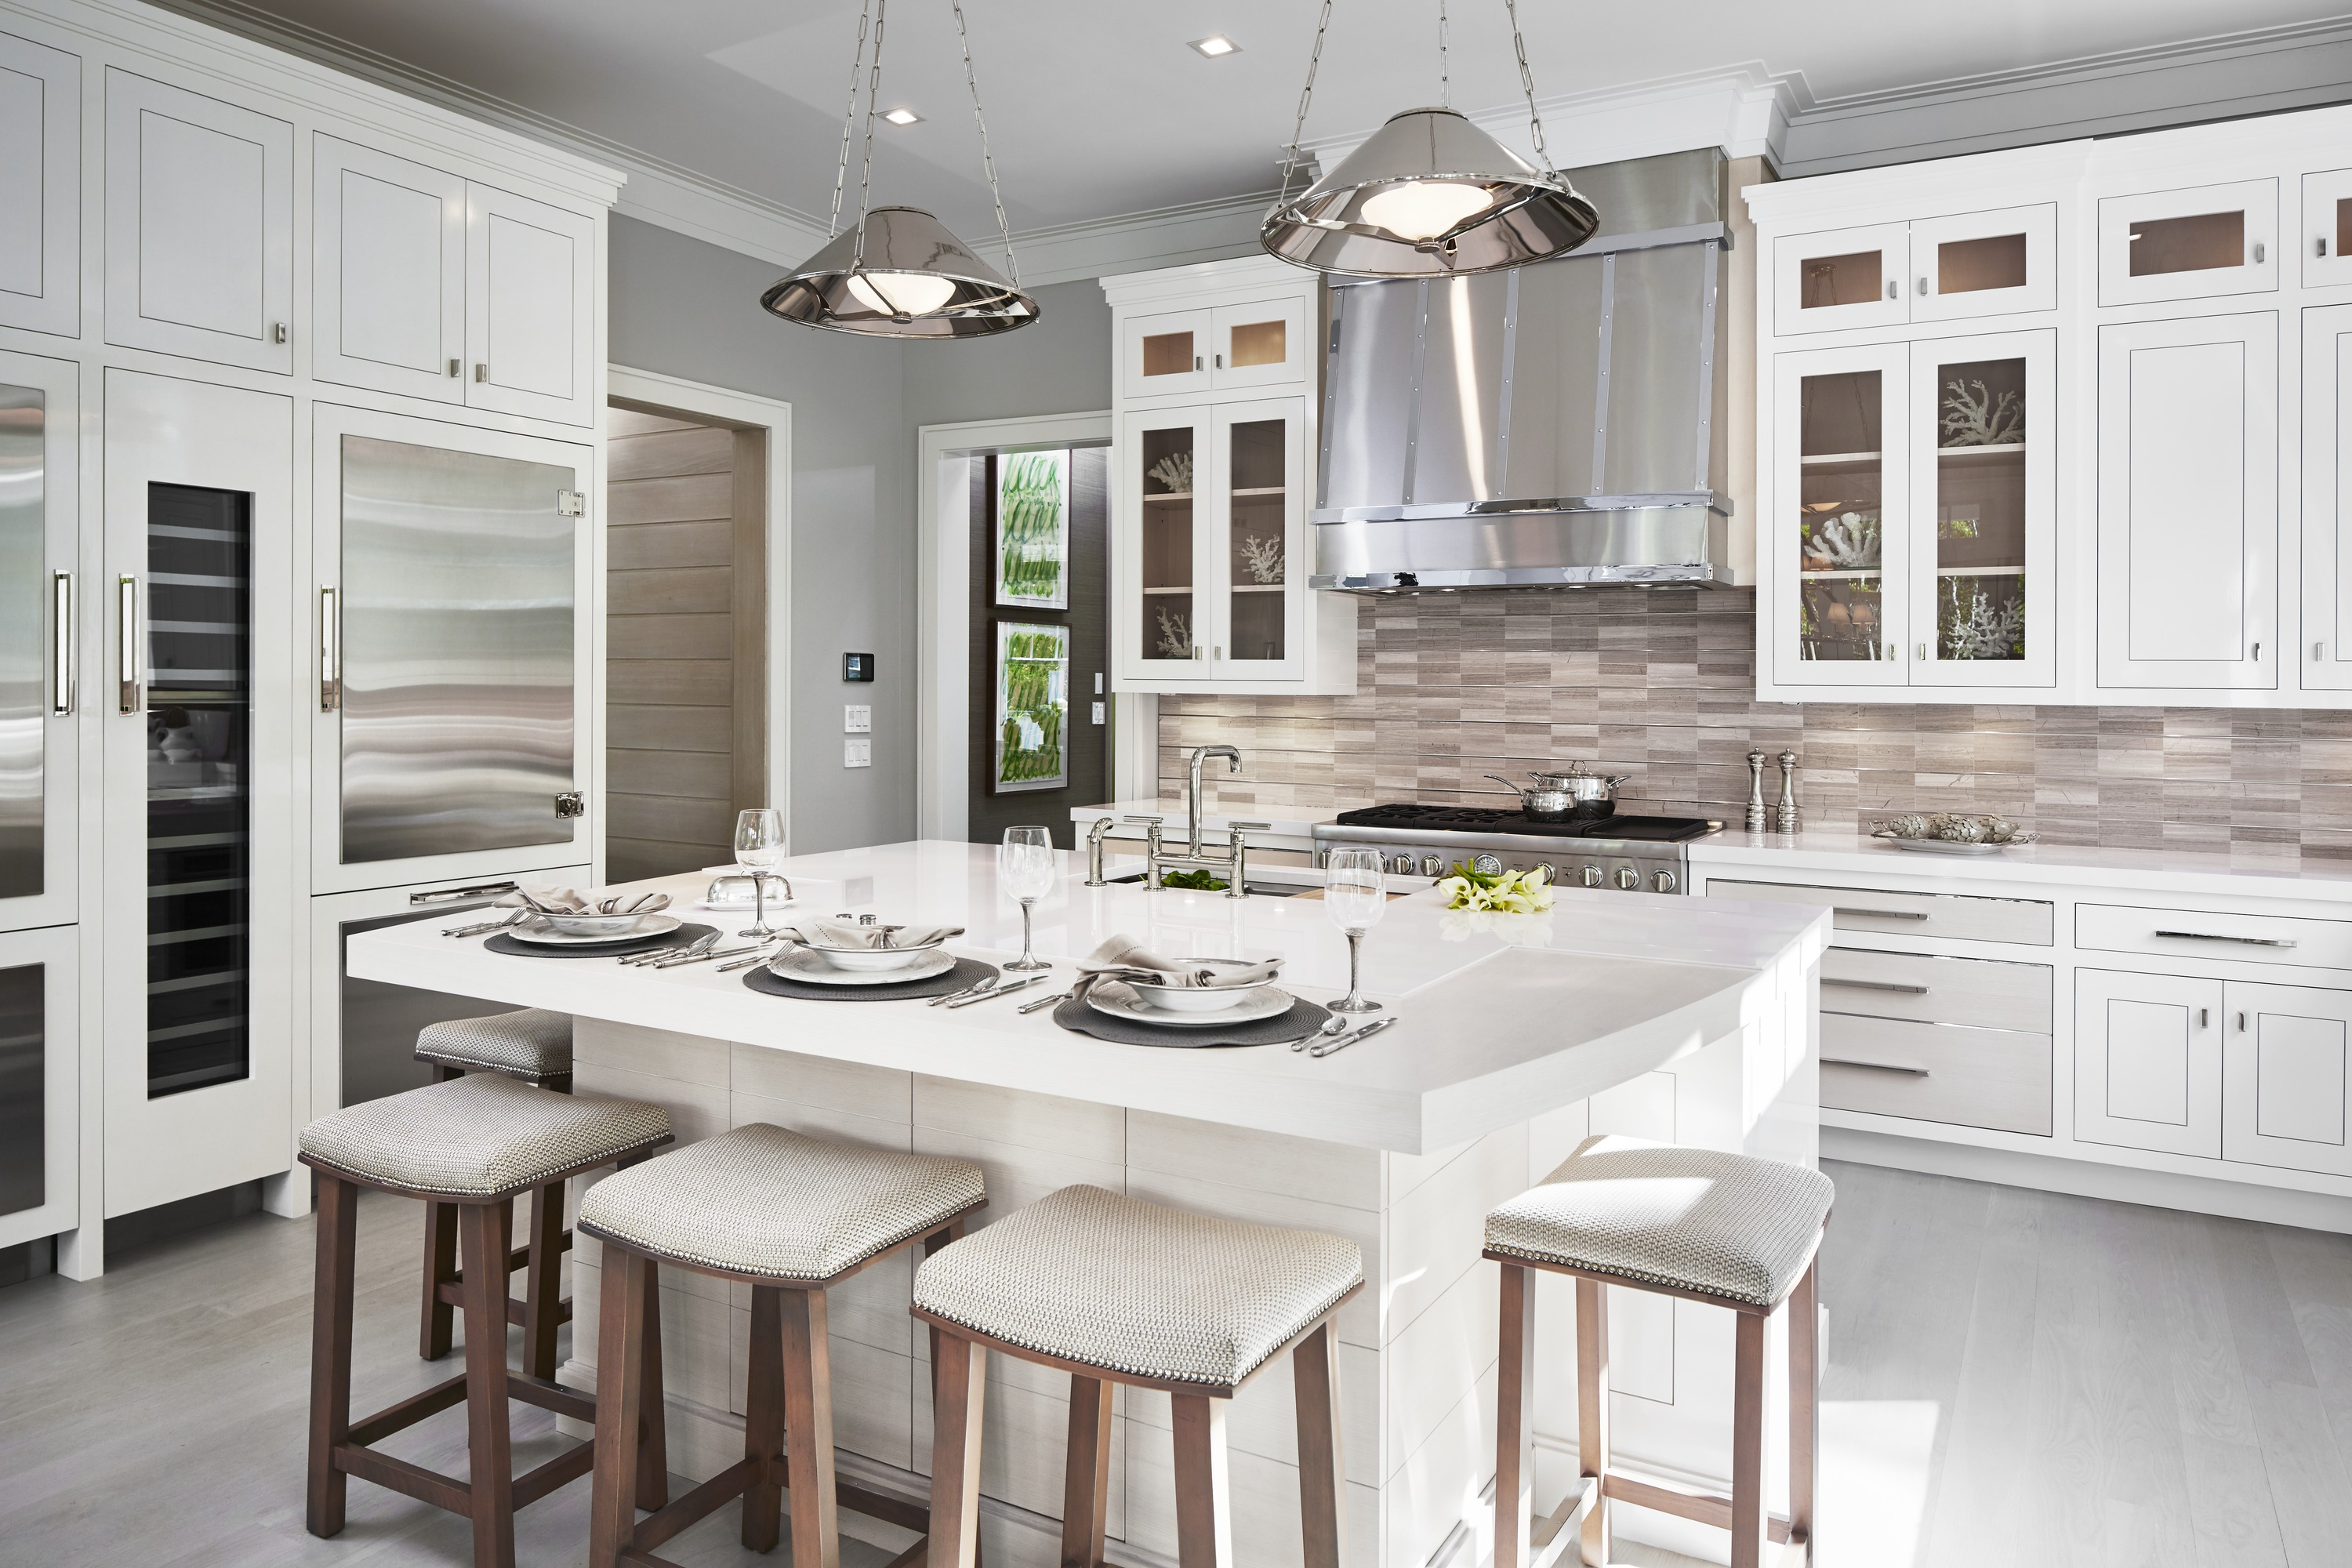 Purist Bridge Kitchen Faucet     Prolific Kitchen Sink     Vault Apron-Front Sink     Dual refrigerators separated by a beverage center flank the island. Together the prep sink, stove and refrigerators create a kitchen triangle for a seamless workflow.